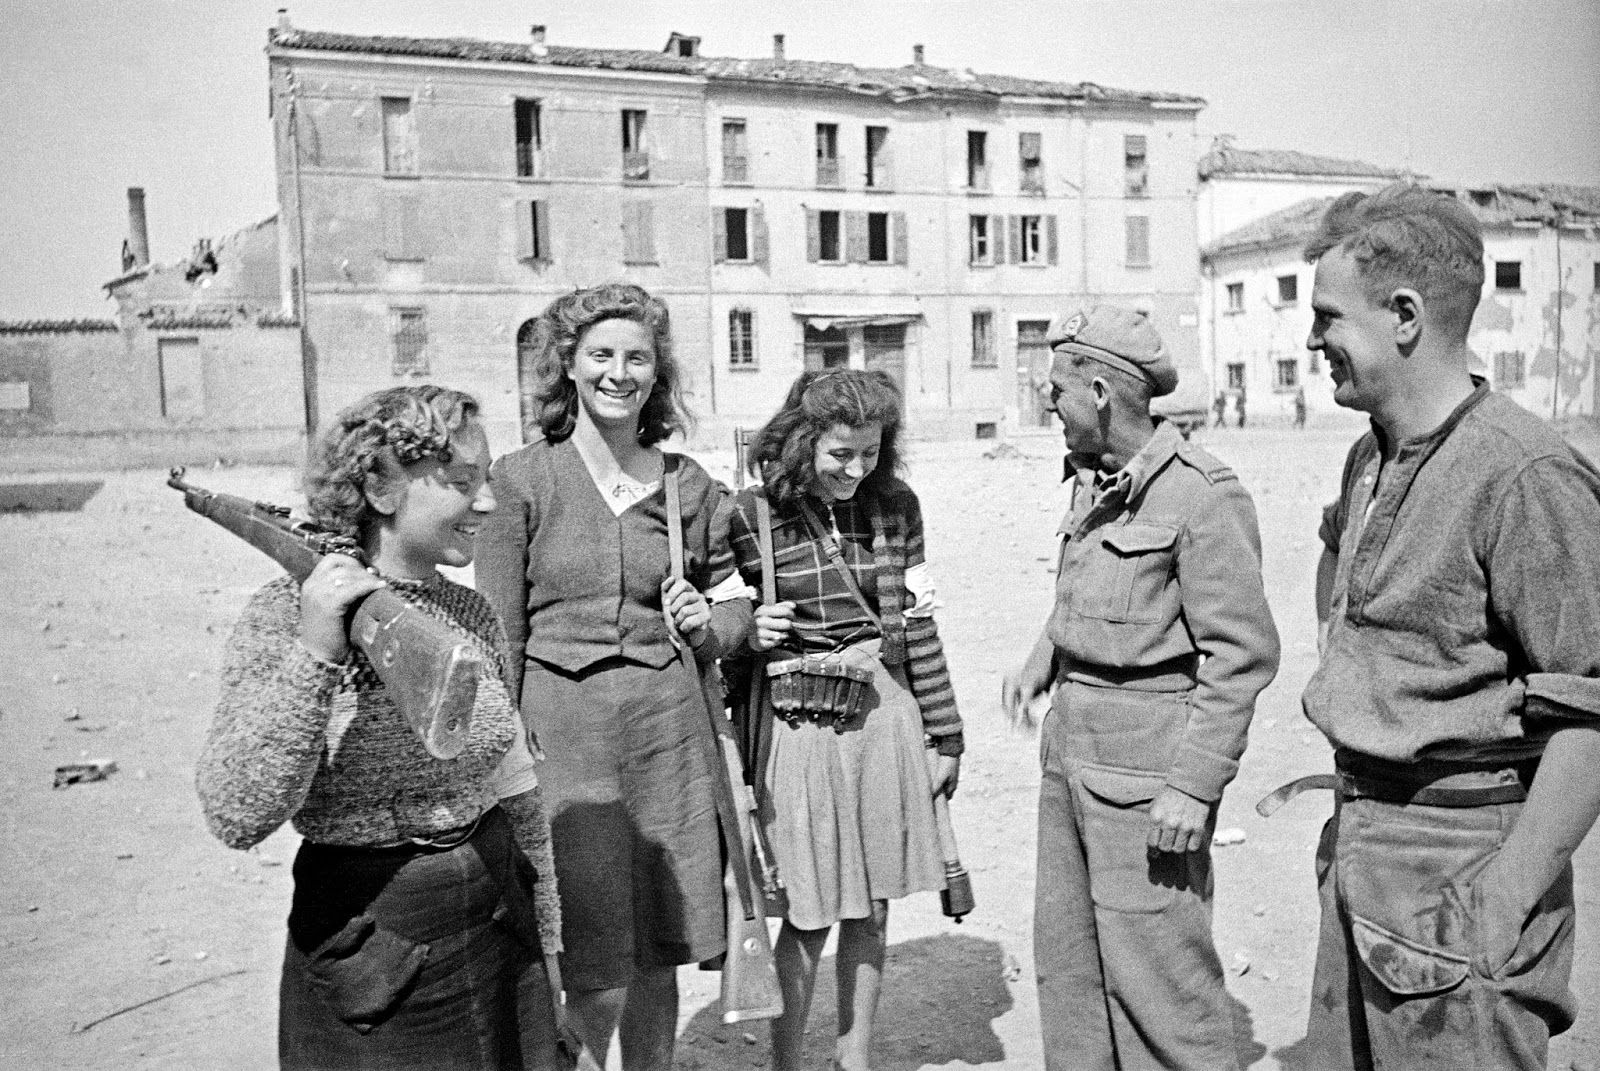 Italian women with rifles and captured German stick grenades  at Massa Lombarda, Italy, during World War II, 13 April 1945